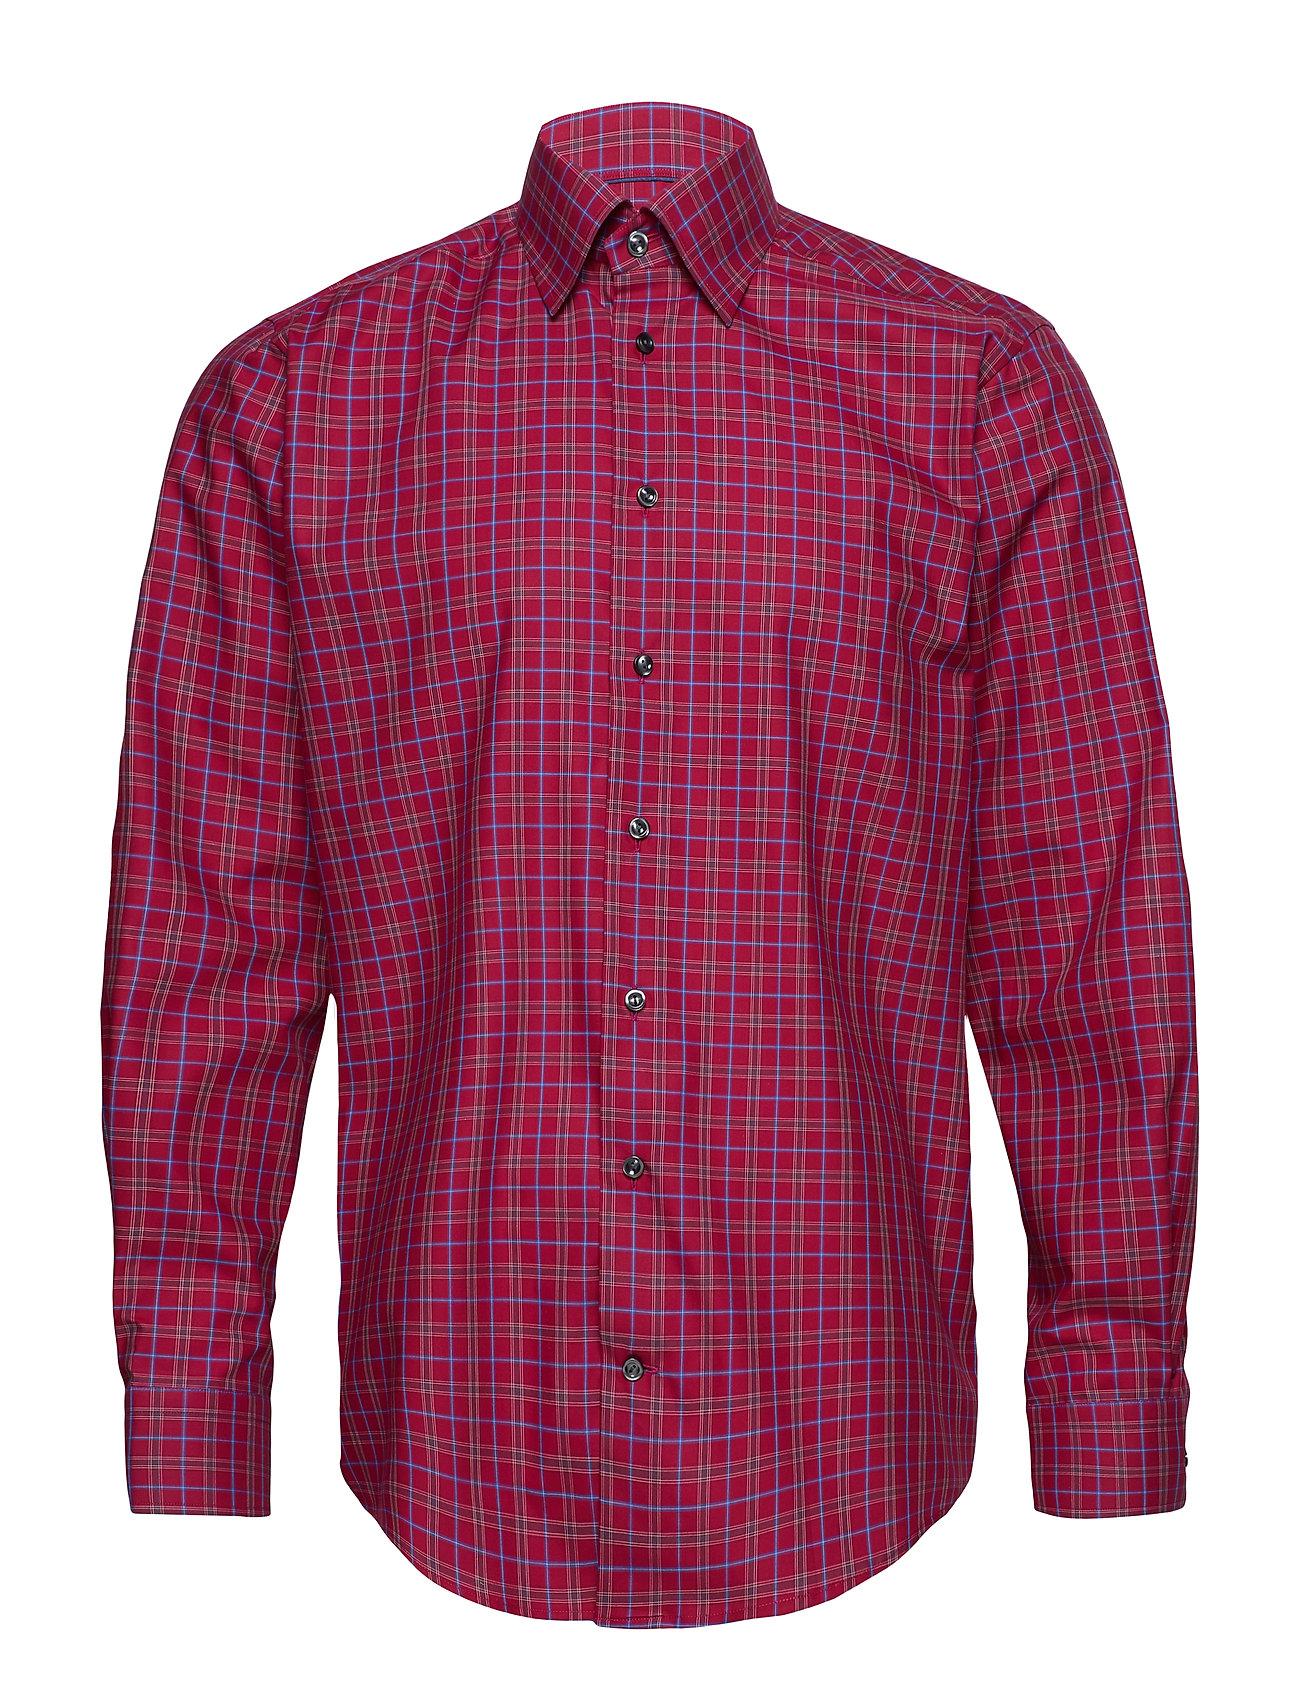 Eton Red Check Shirt - PINK/RED